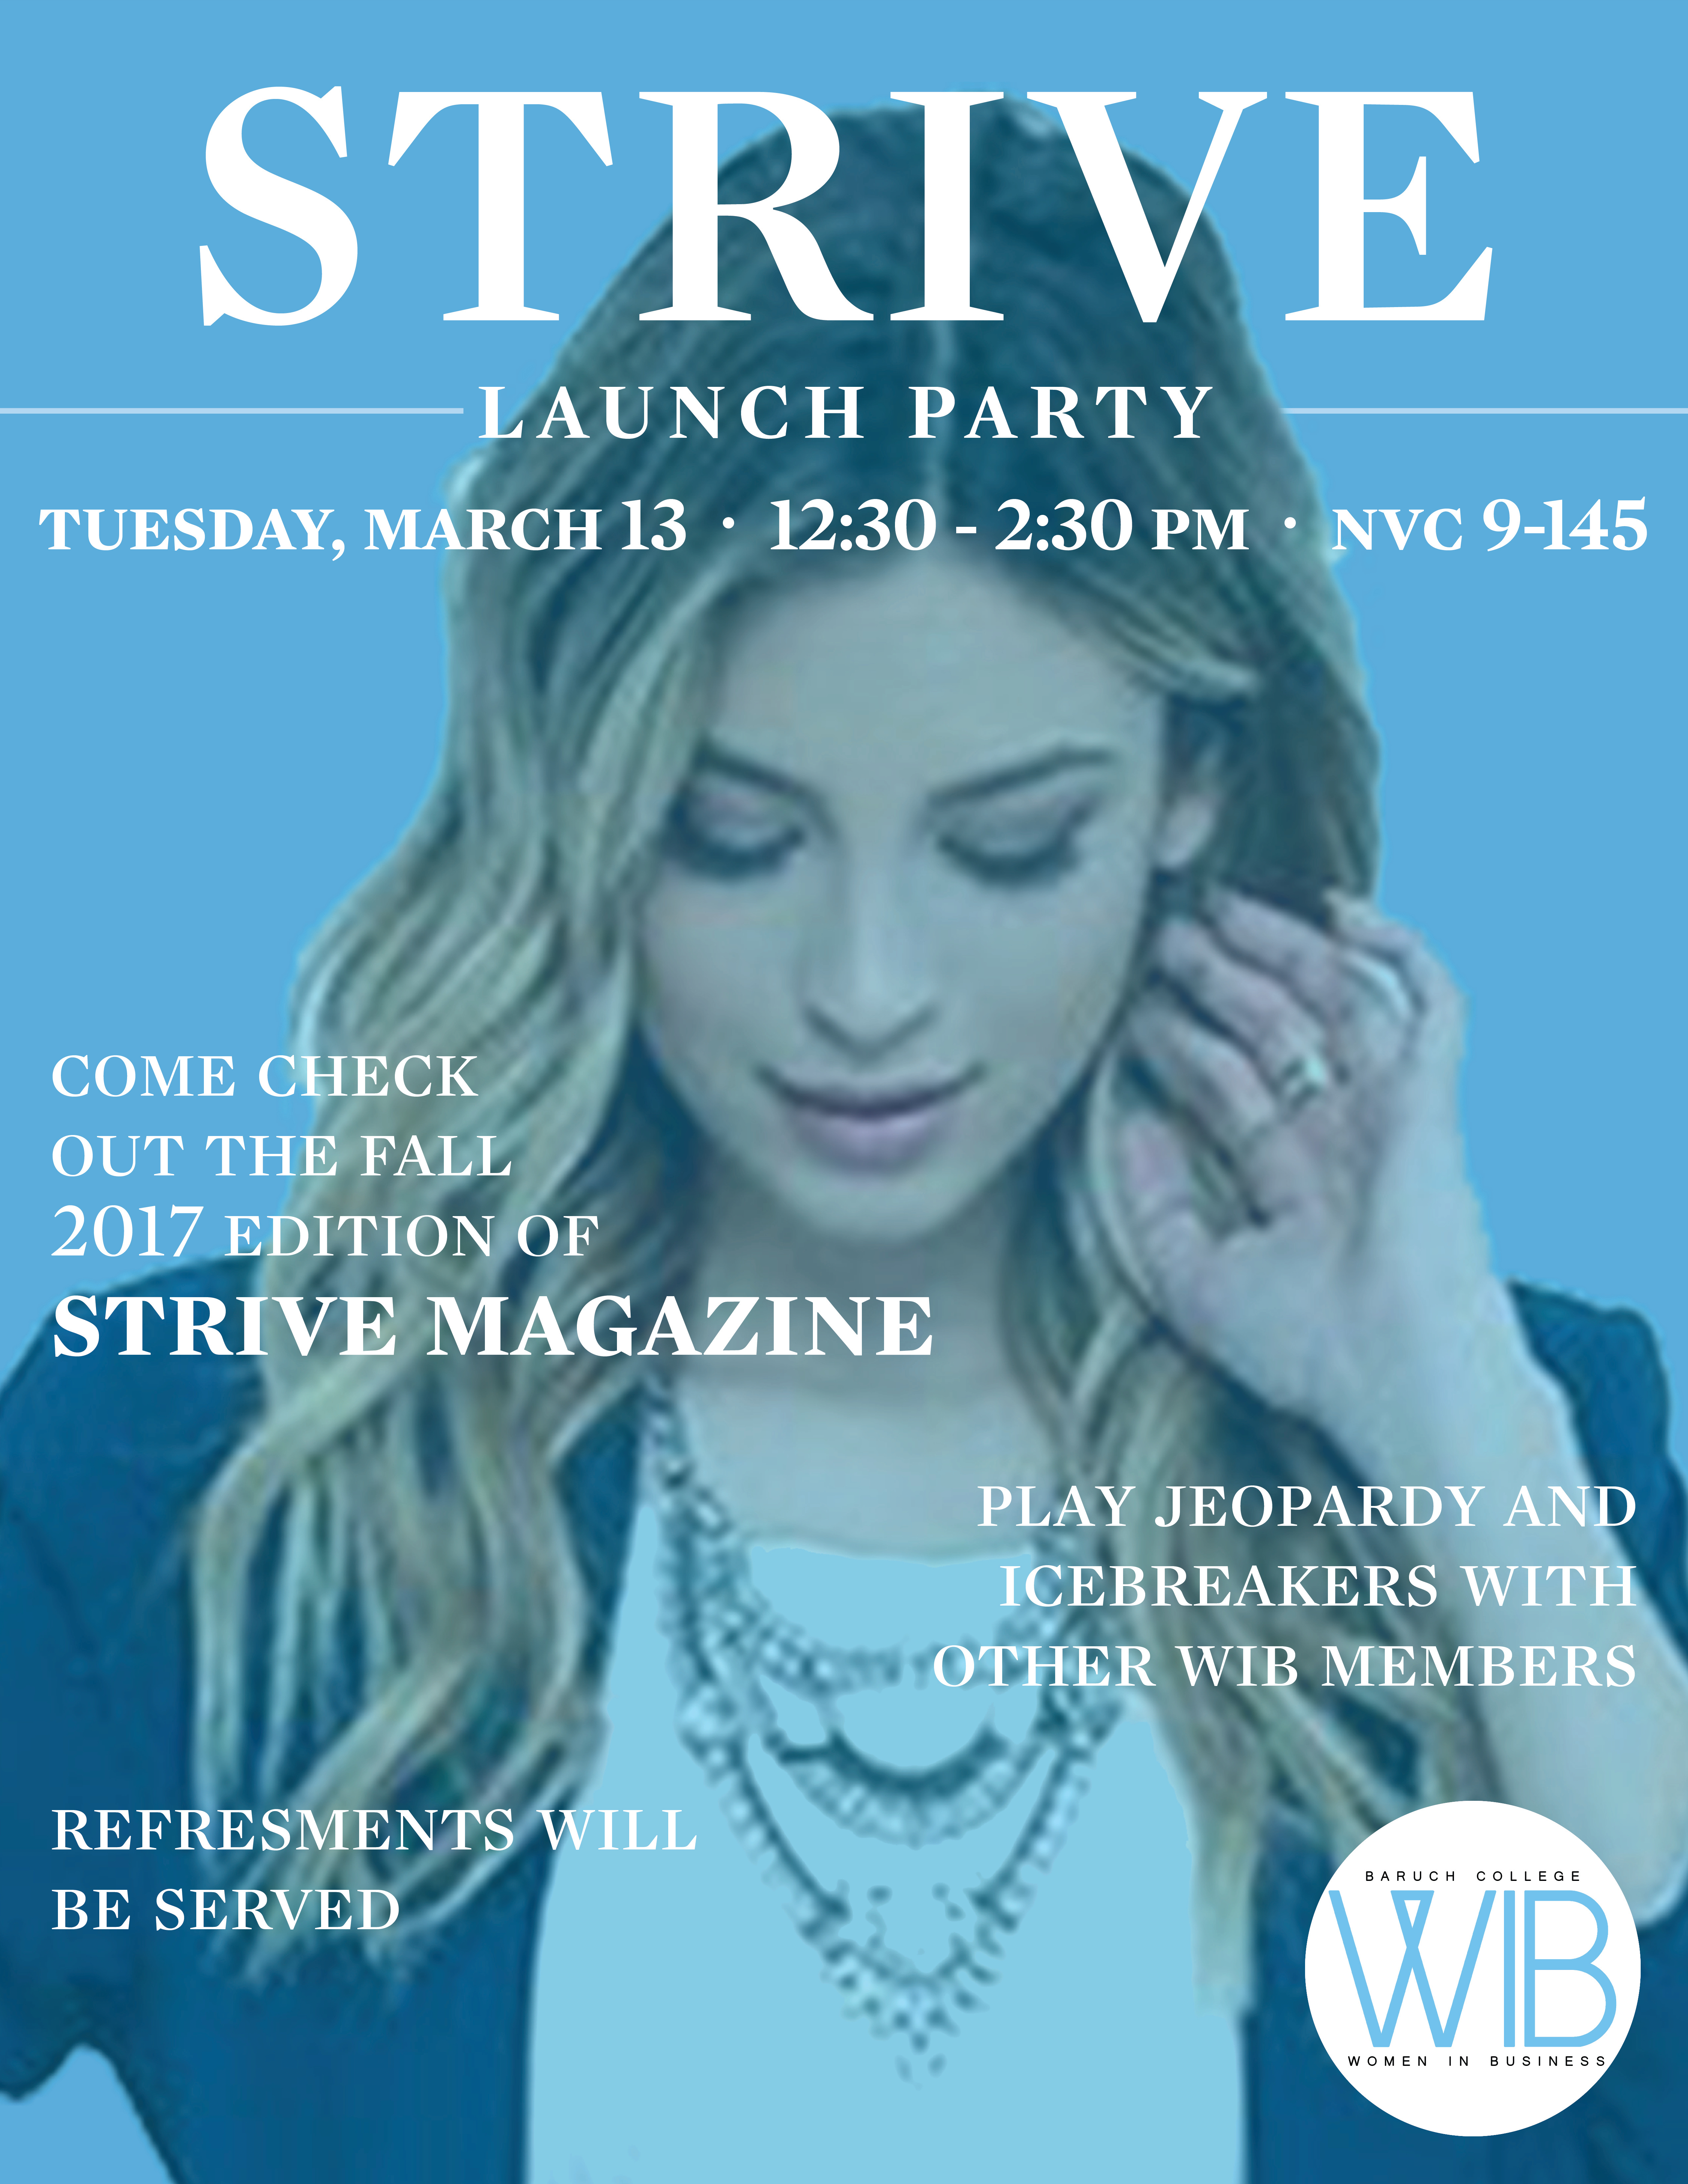 STRIVE Launch Party